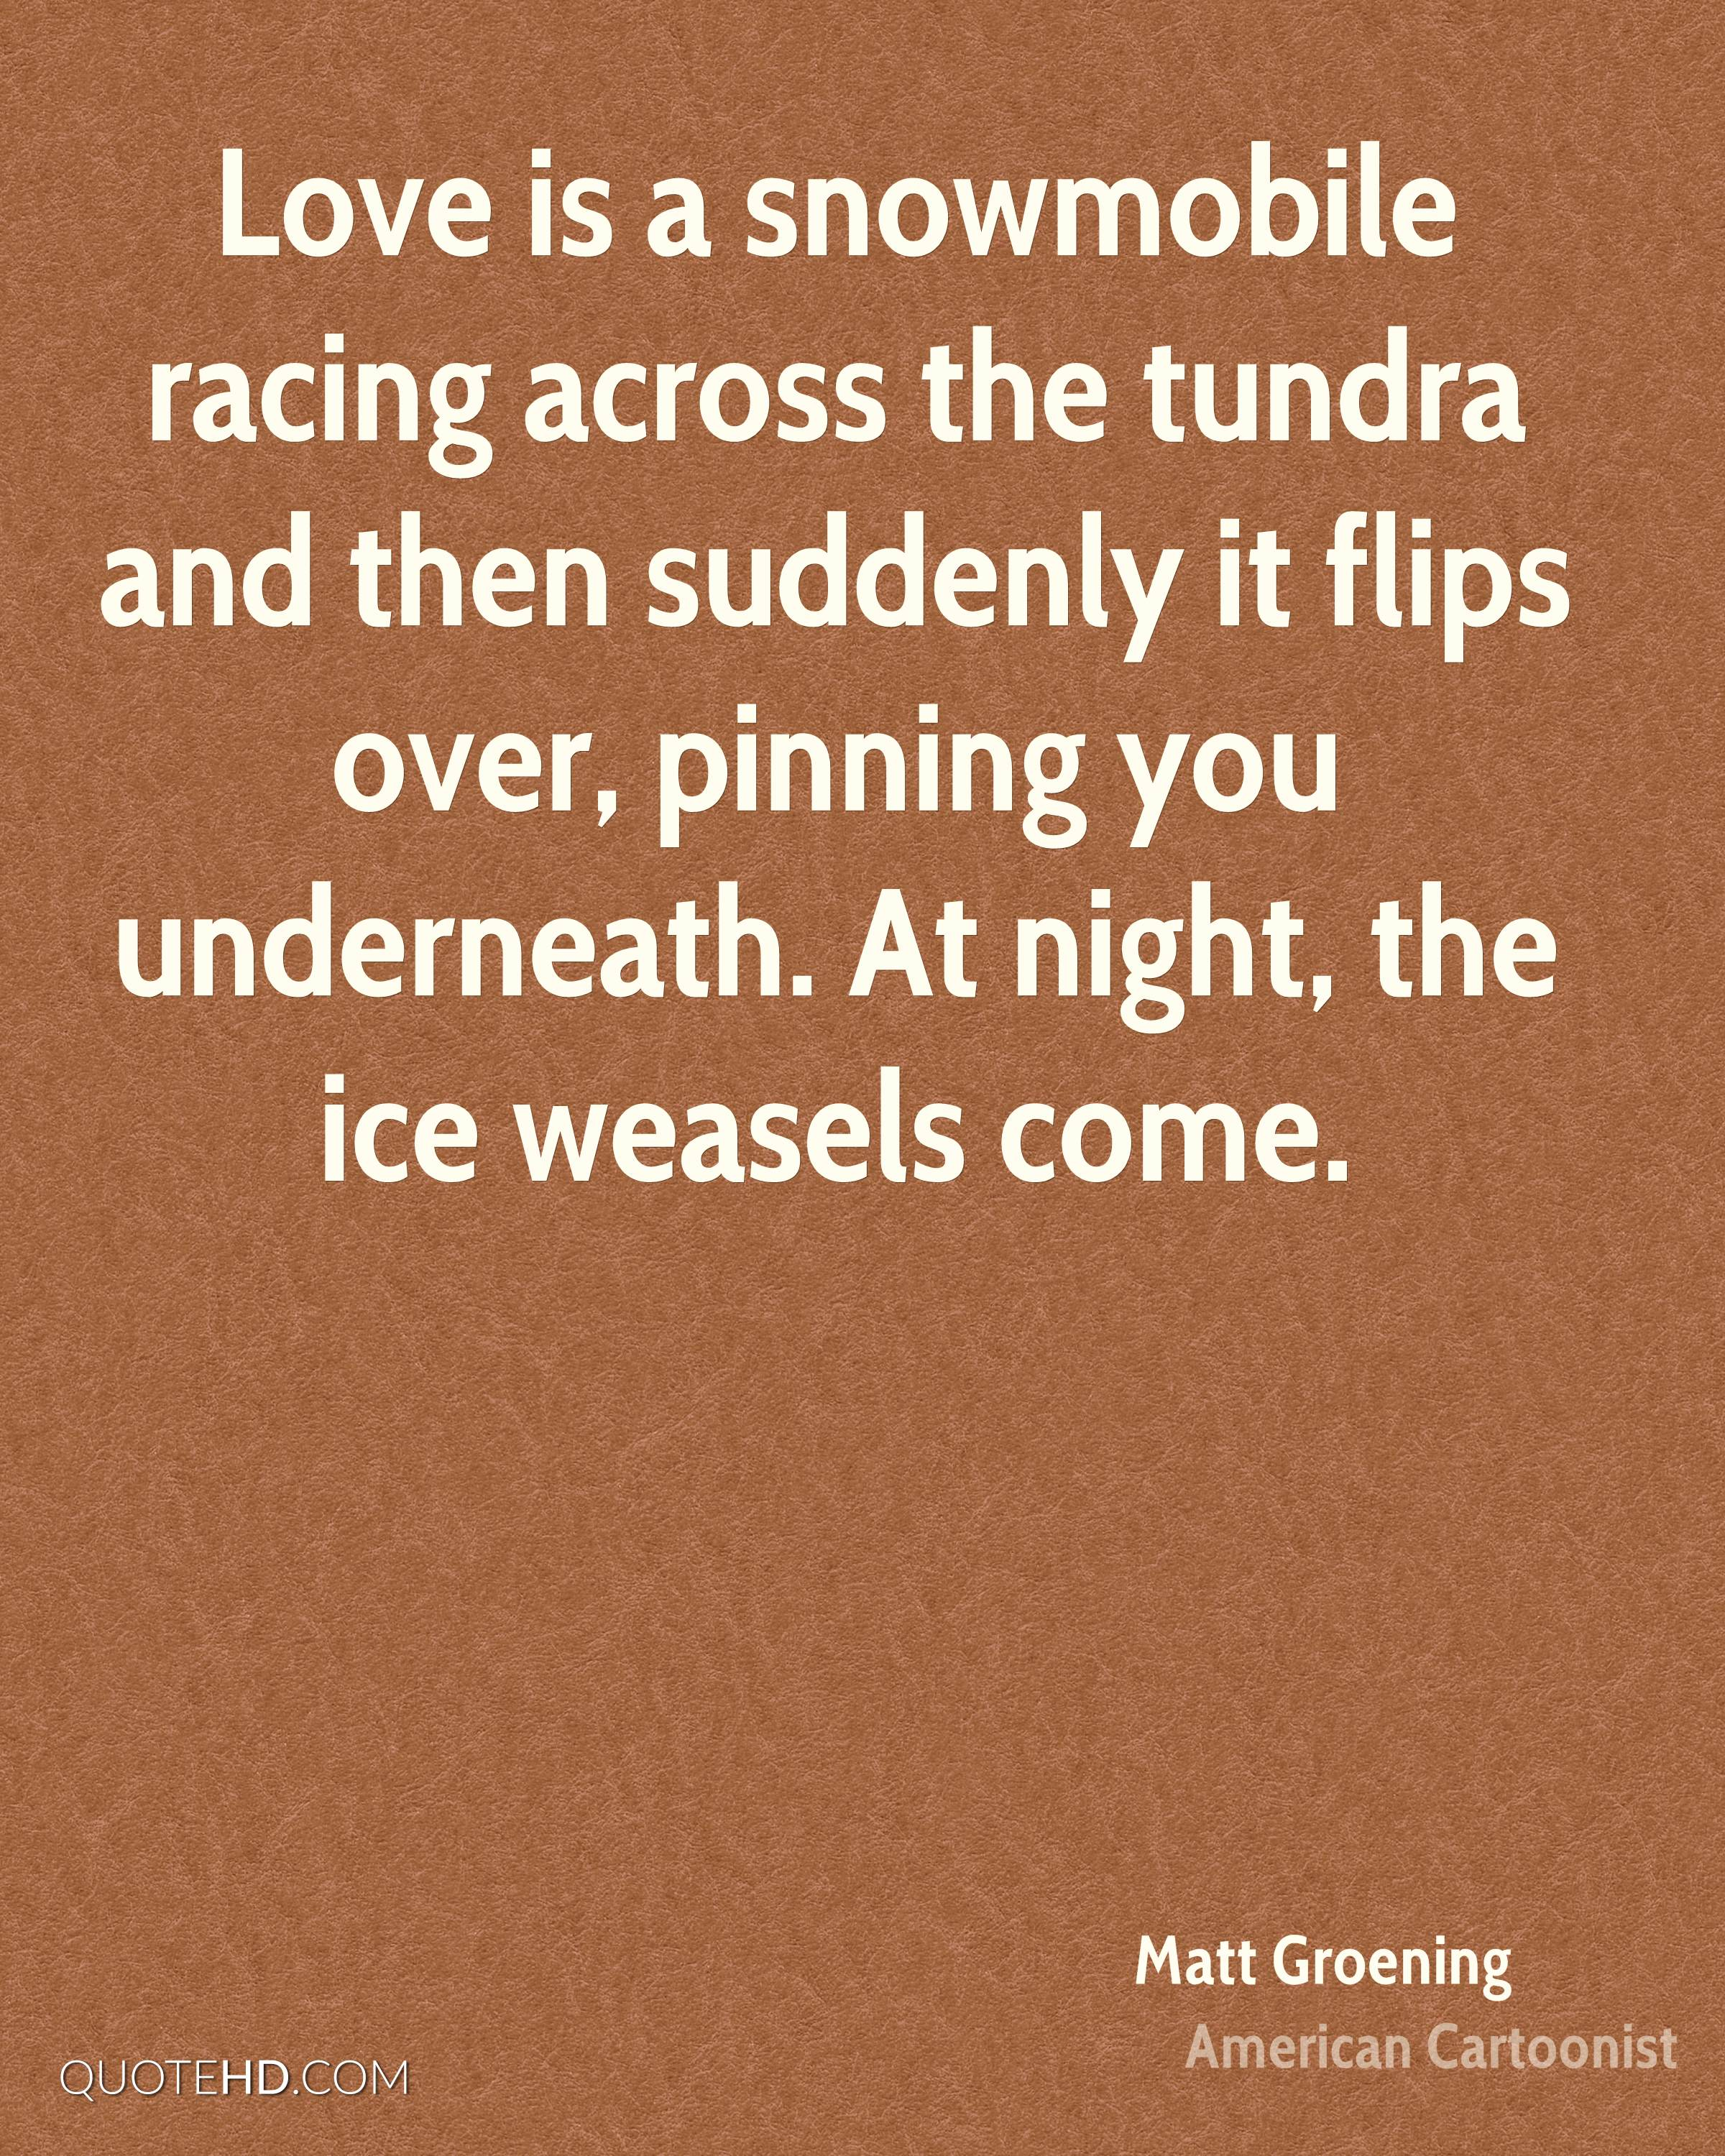 Love is a snowmobile racing across the tundra and then suddenly it flips over, pinning you underneath. At night, the ice weasels come.